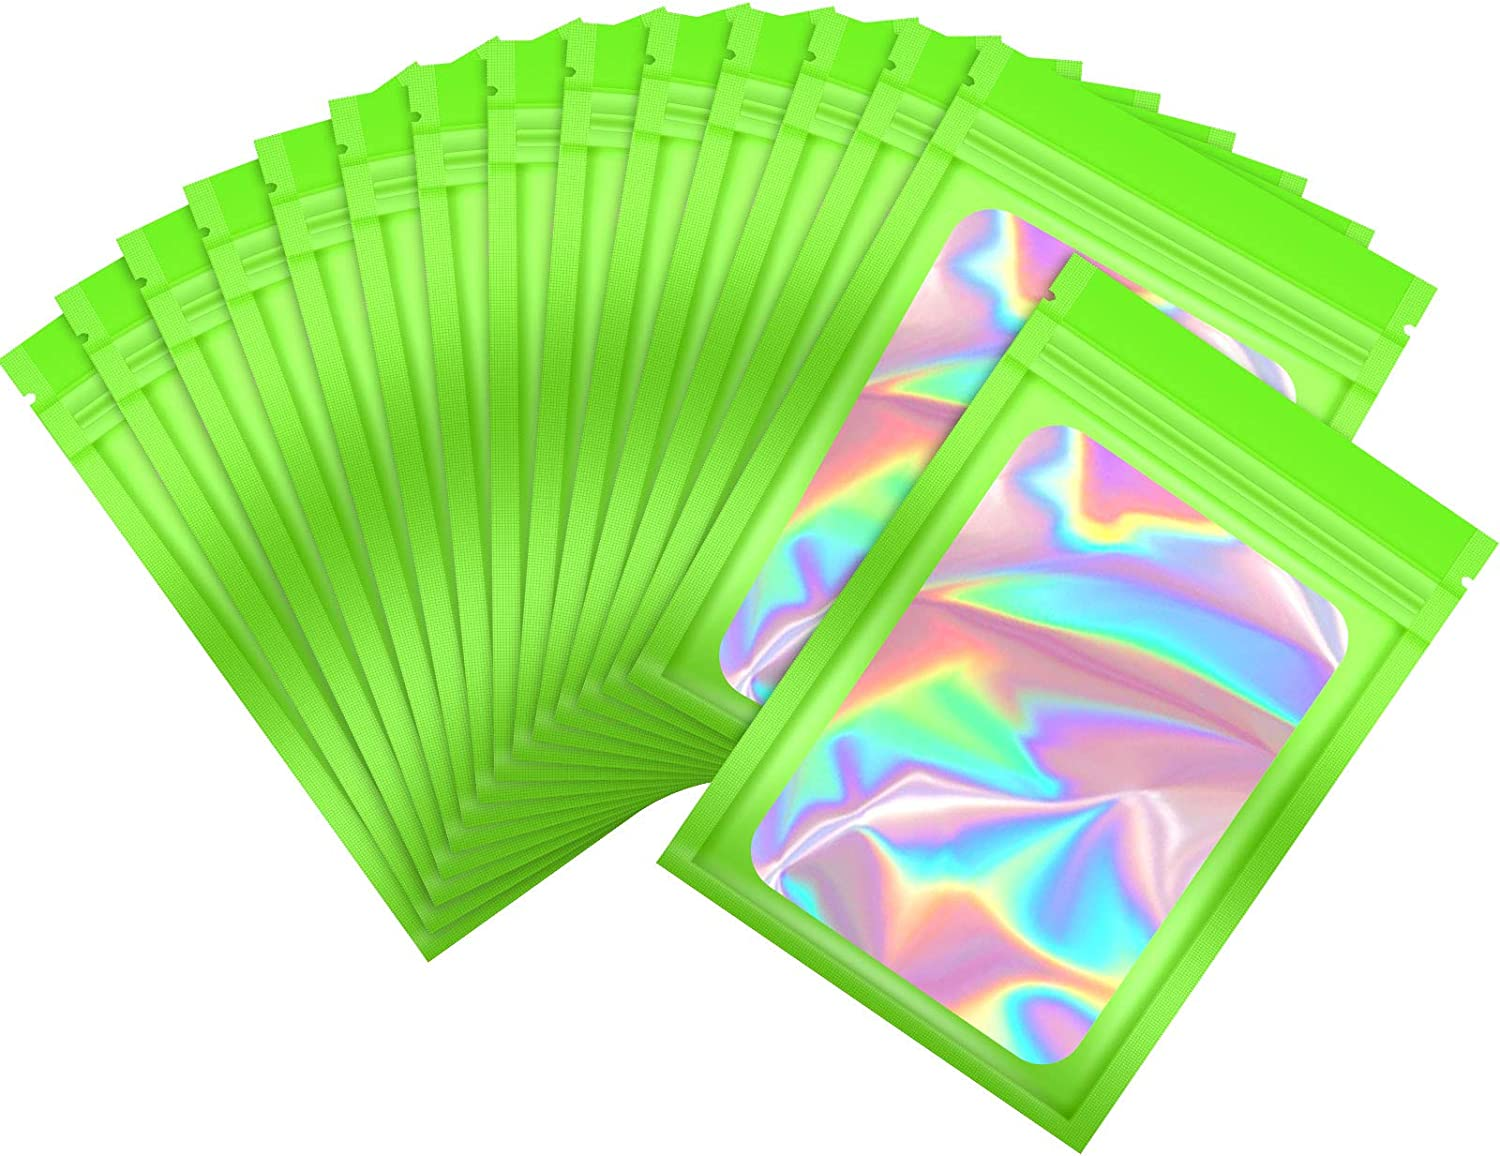 100 Pieces Smell Proof Mylar Bags Resealable Odor Proof Bags Holographic Packaging Pouch Bag with Clear Window for Food Storage Gloss Eyelash Jewelry Electronics Storage (Green, 3 x 4.7 Inch)